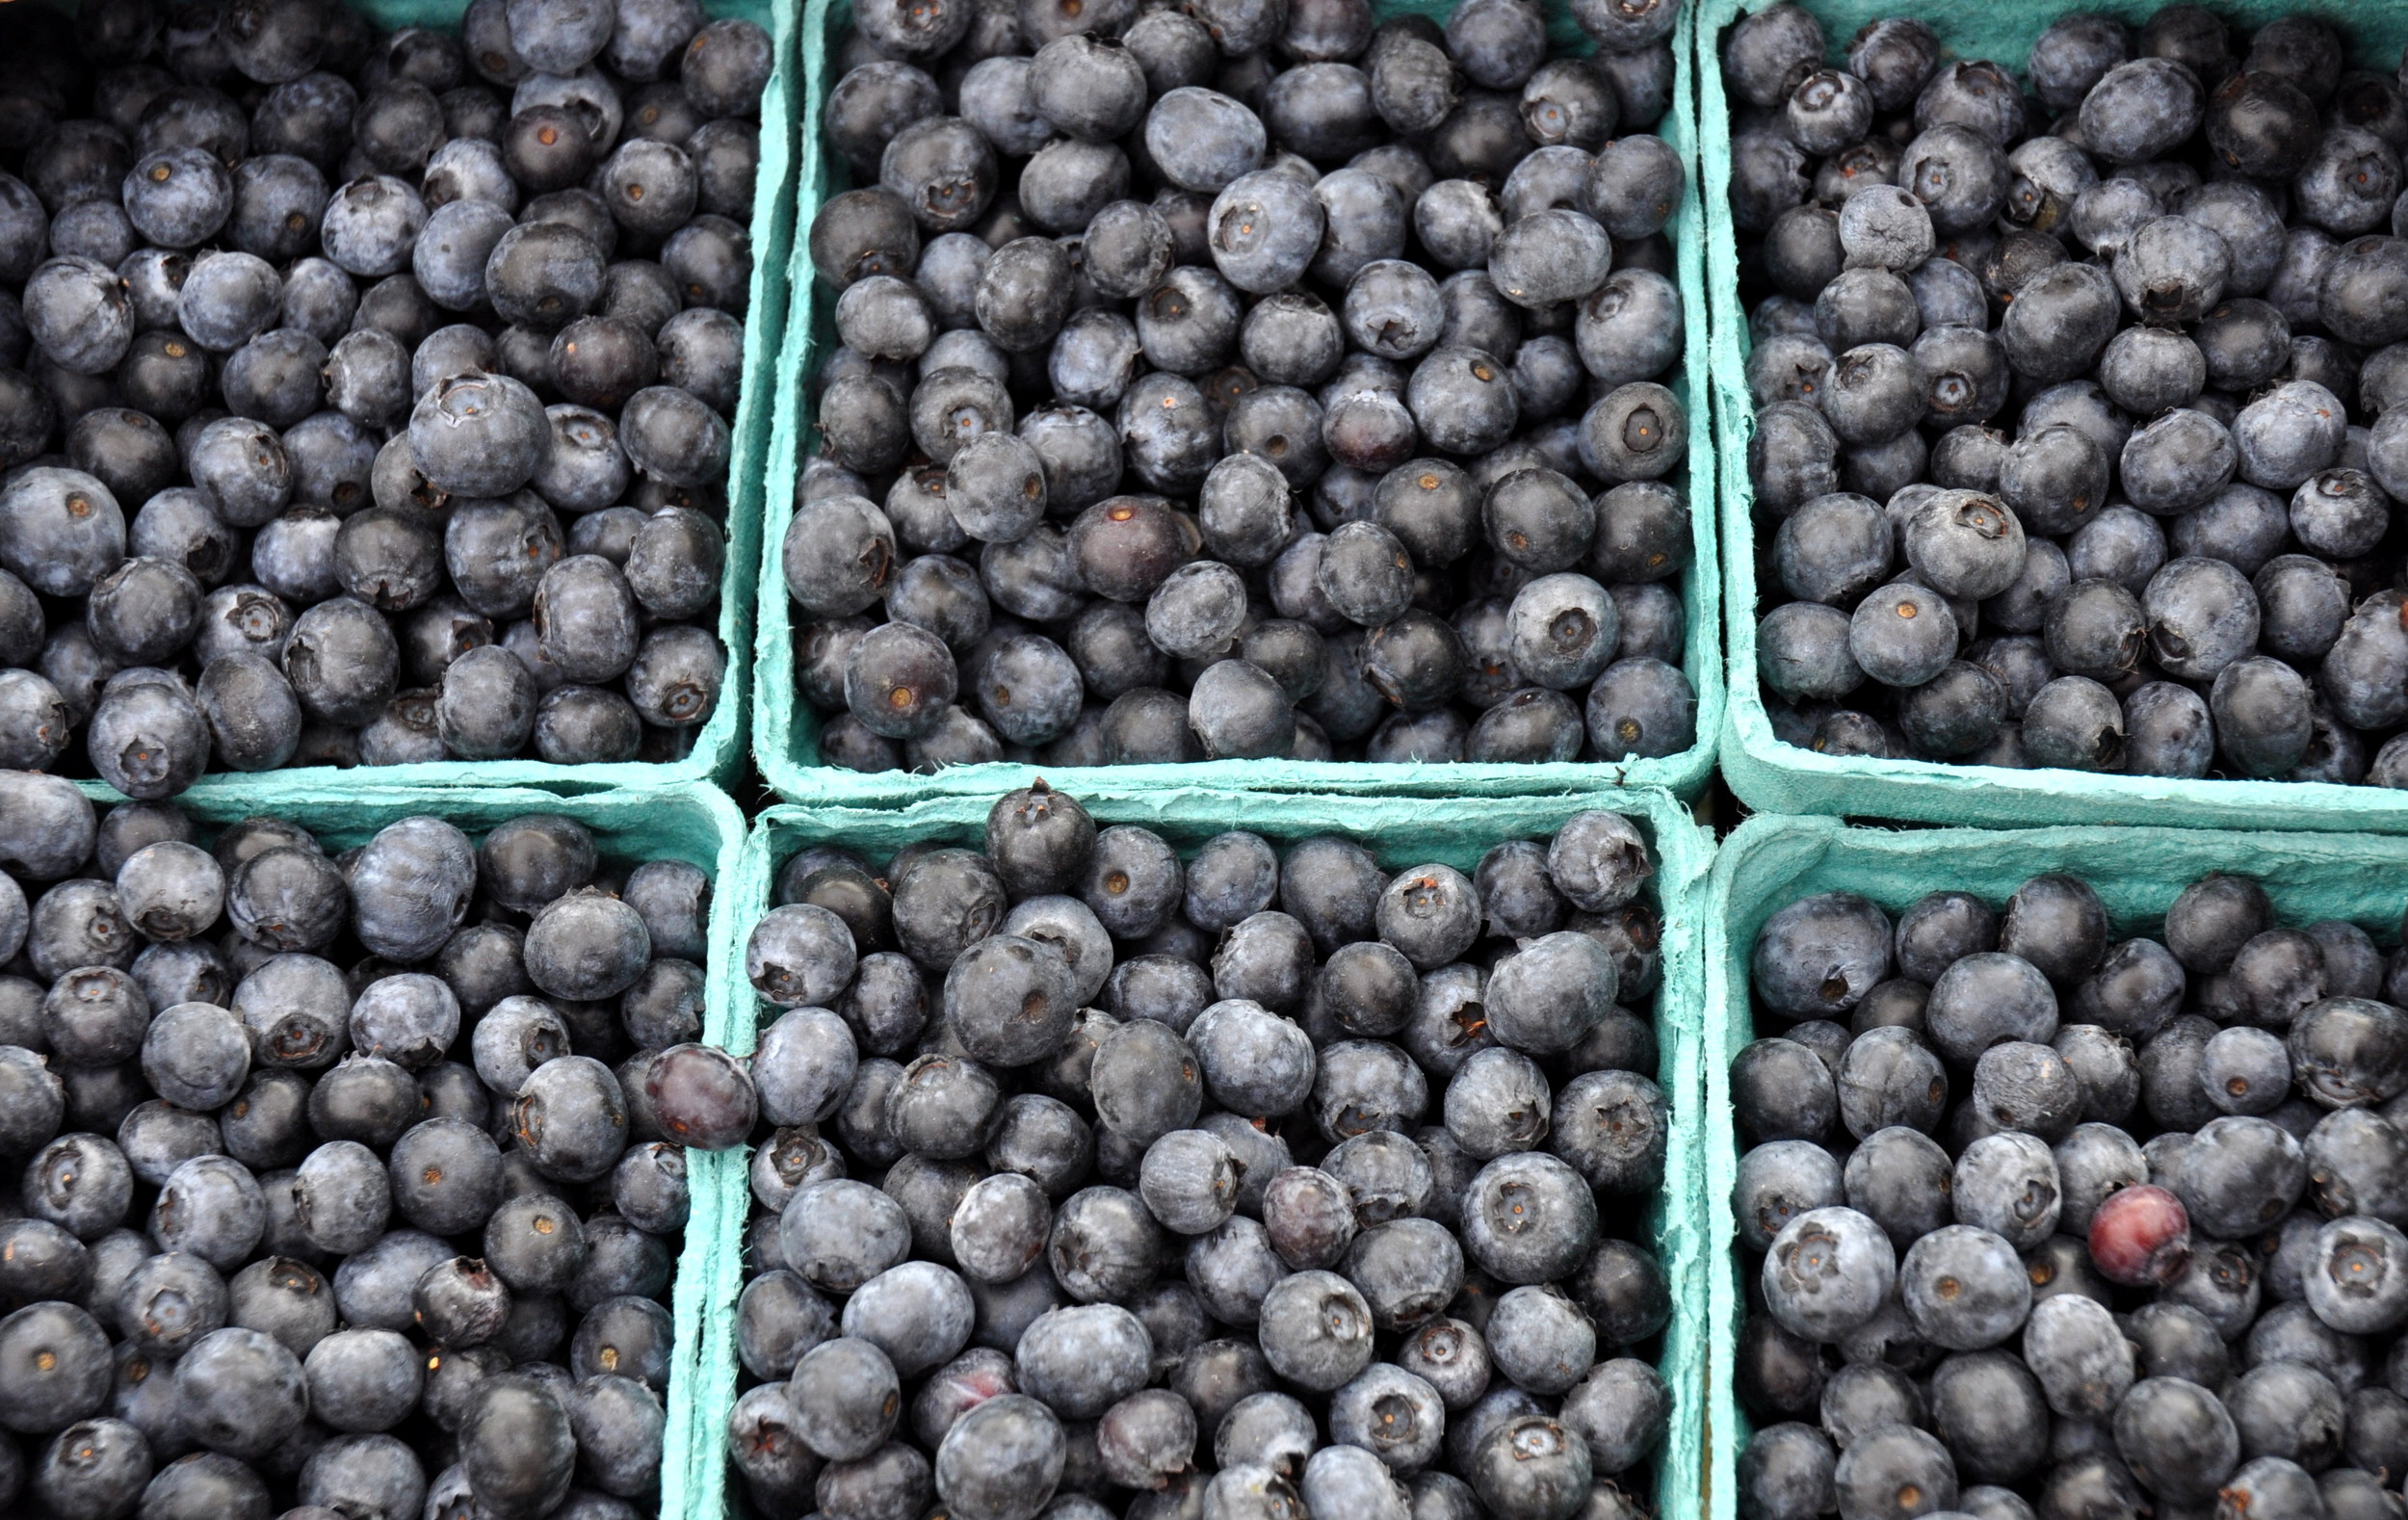 Rubels blueberries from Whitehorse Meadows Farm. Photo copyright 2013 by Zachary D. Lyons.